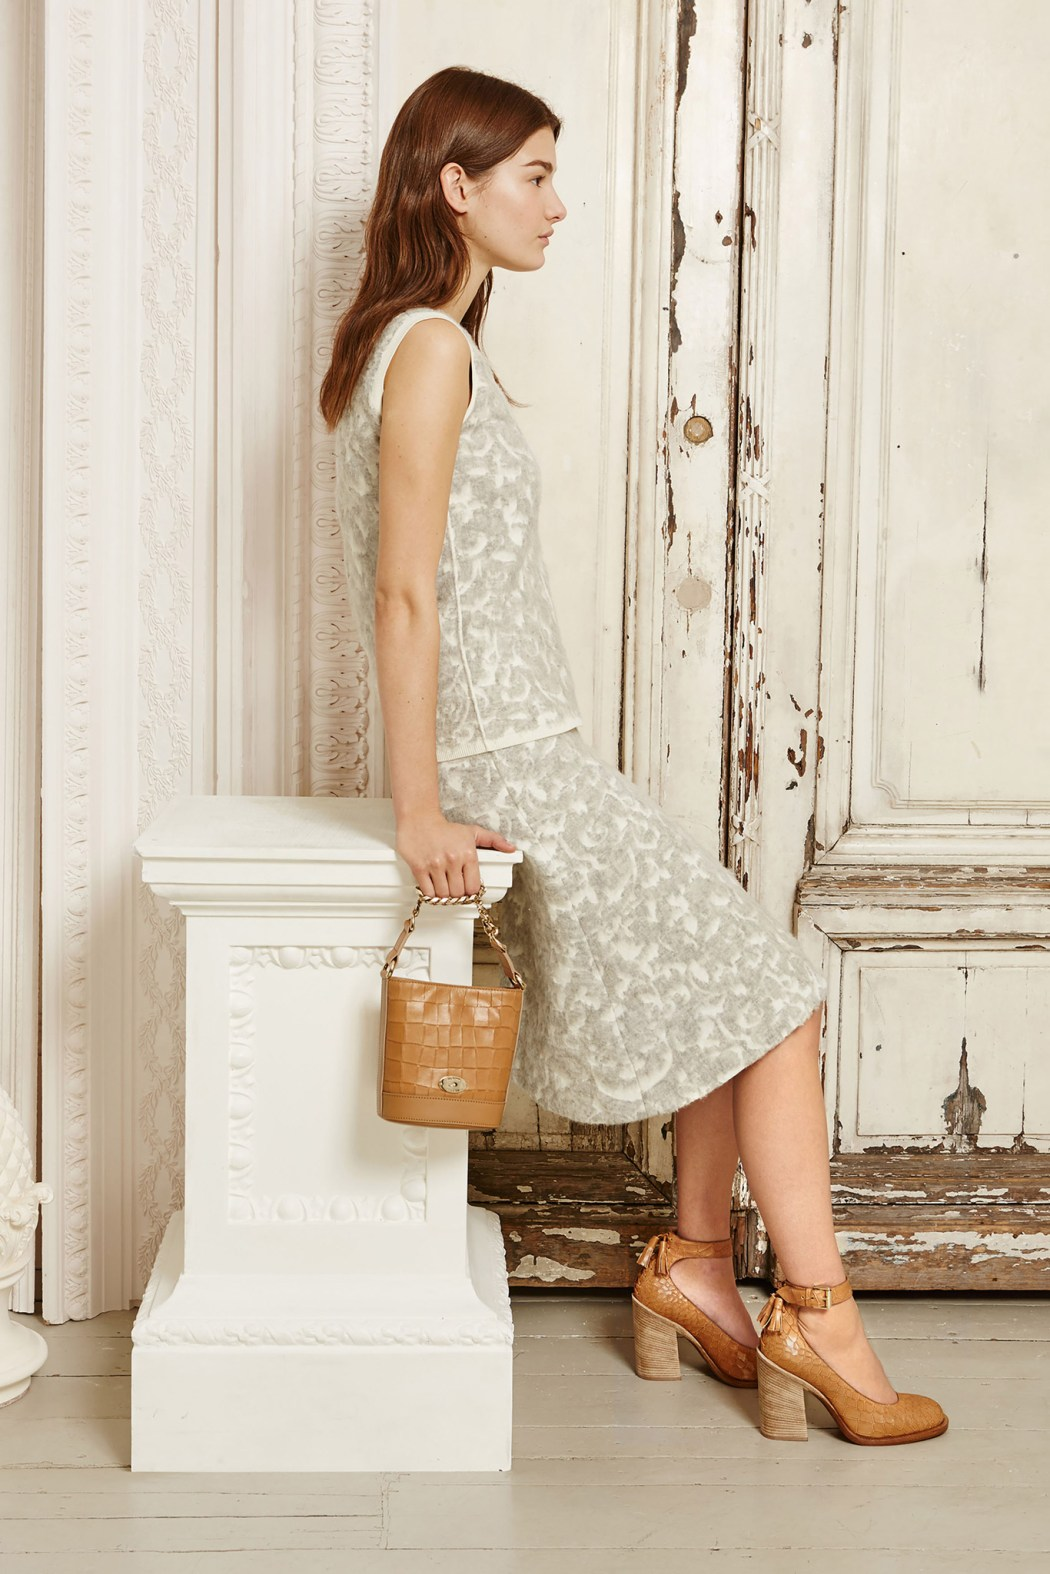 mulberry-009-1366